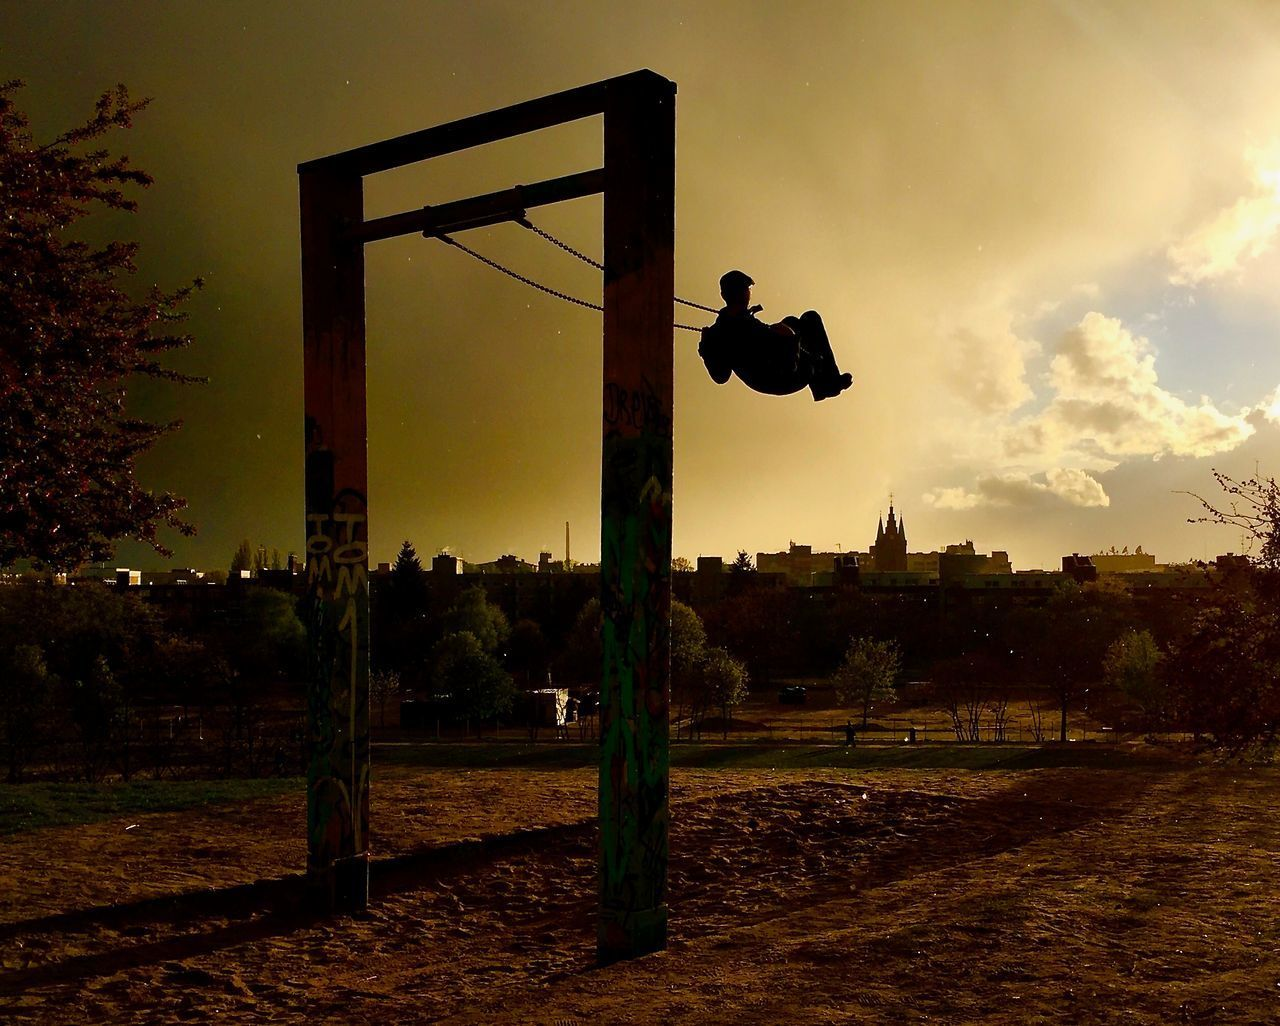 Calmness City Living Evening Sky Field Full Length Movement Nature Outdoors Park Peaceful Moment Shadows & Lights Silhouette Sky Sunset Swinging Tree Backgrounds